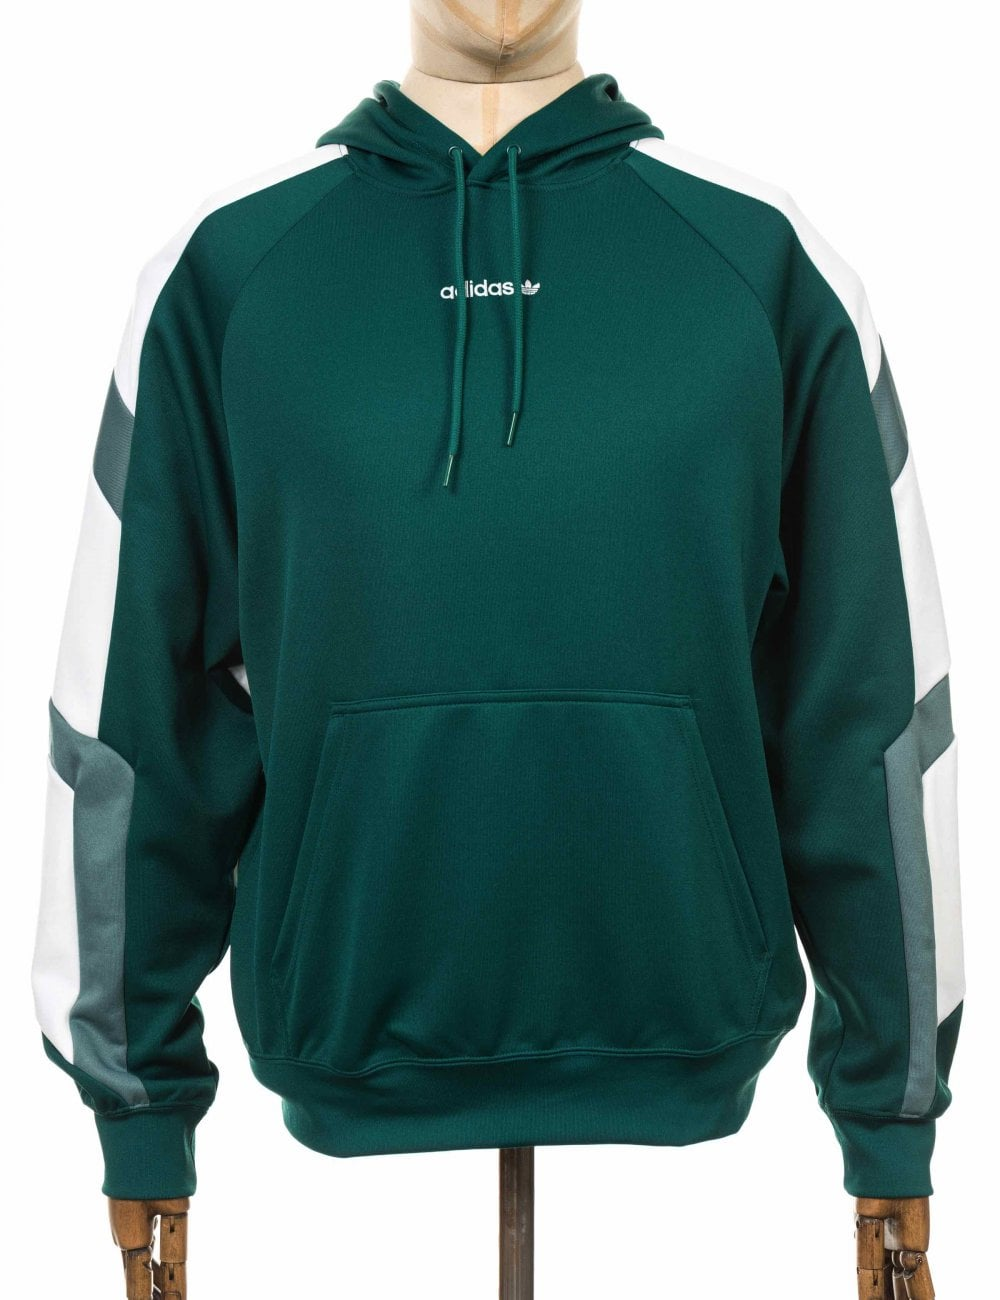 f18d9b7b5e58 Adidas Originals EQT Block Hooded Sweatshirt - Noble Green ...